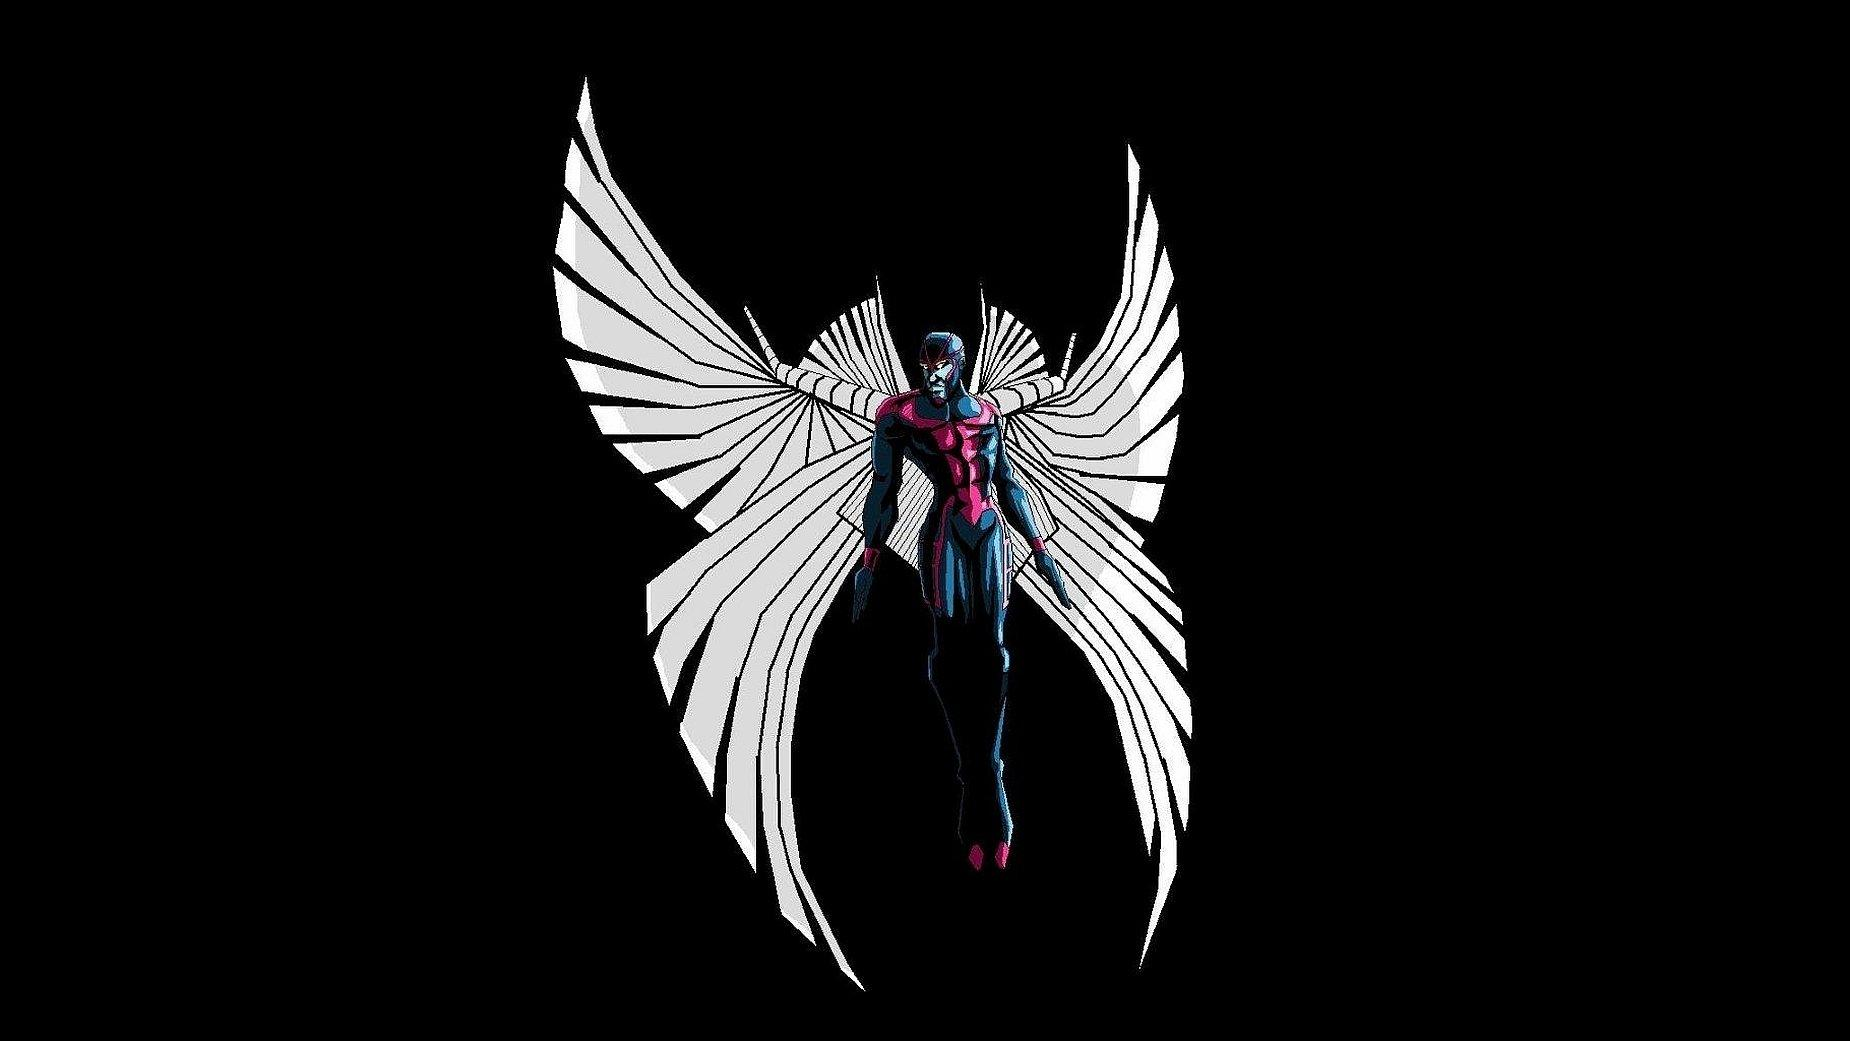 Archangel Wallpaper and Background Image | 1850x1041 | ID:608795 ...